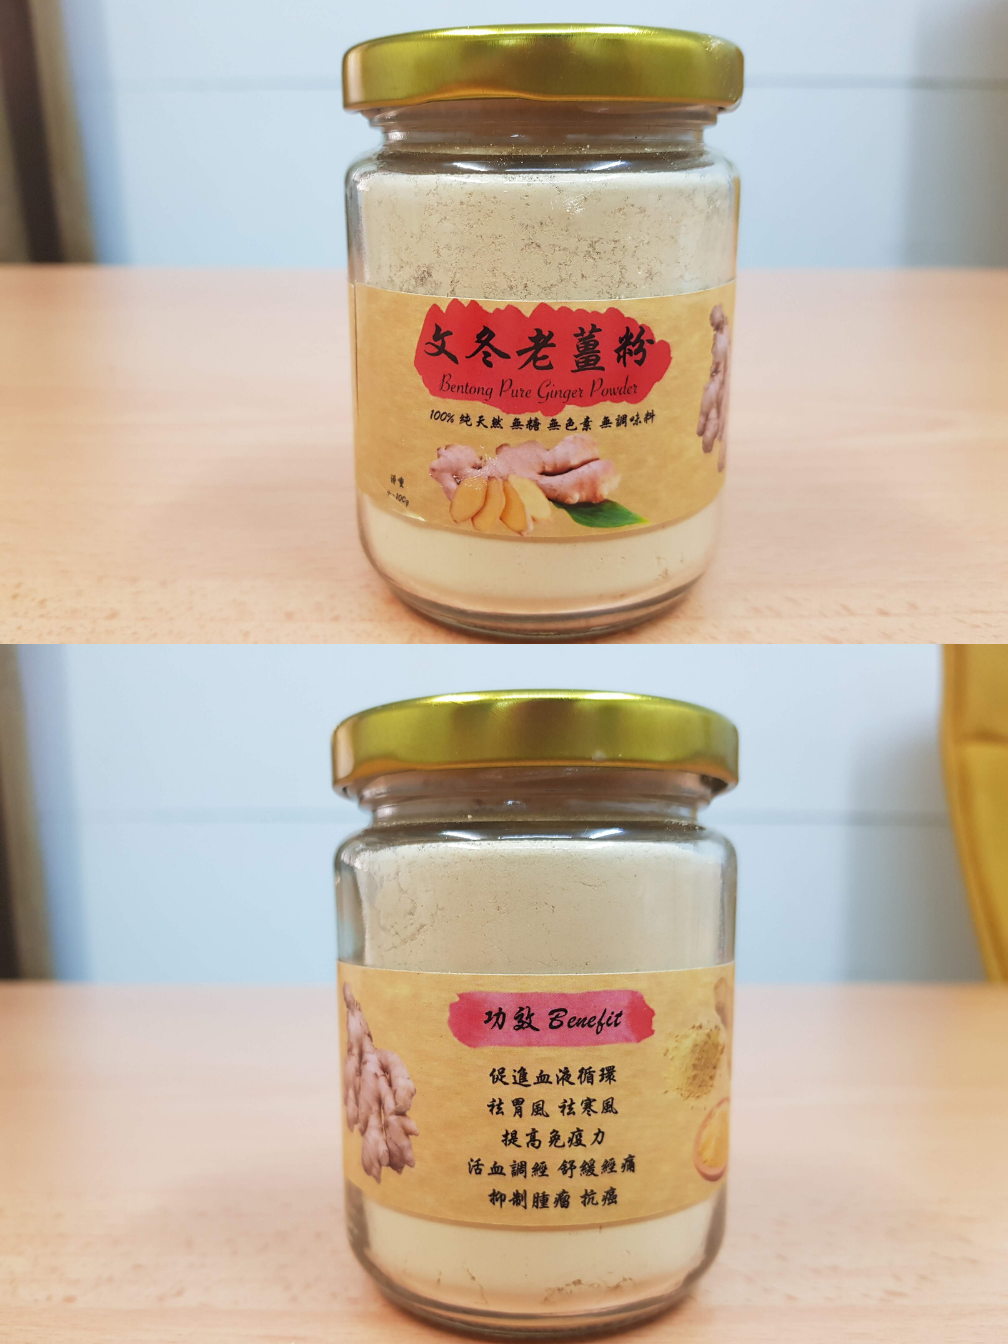 Bentong Ginger Powder 文冬老姜粉.png